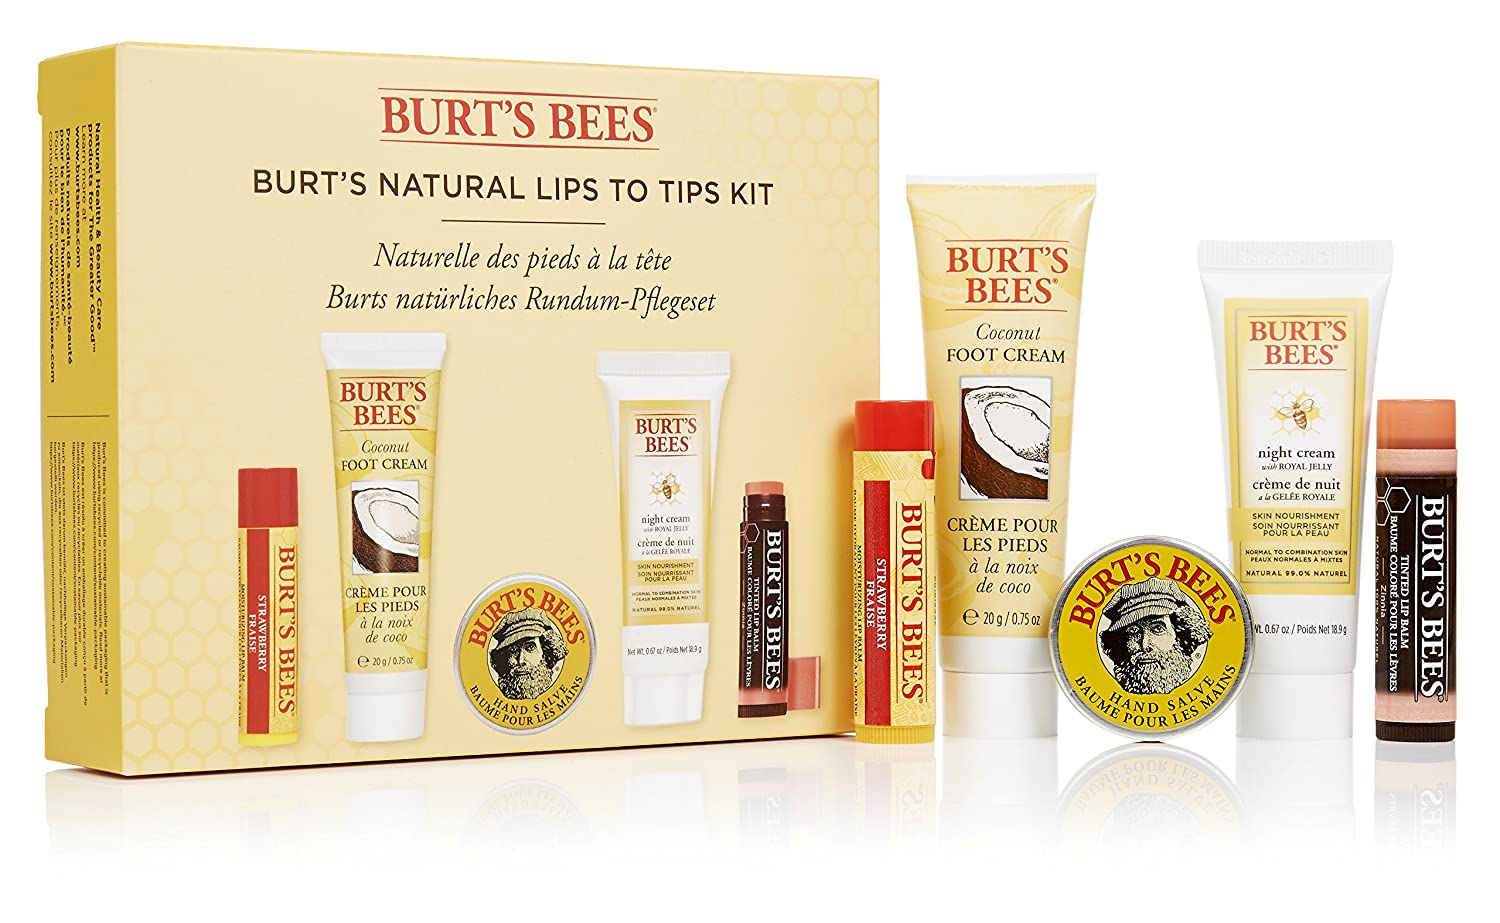 Burt's Bees Burt's Natural Lips to Tips Kit Burt' s Bees 21305-14